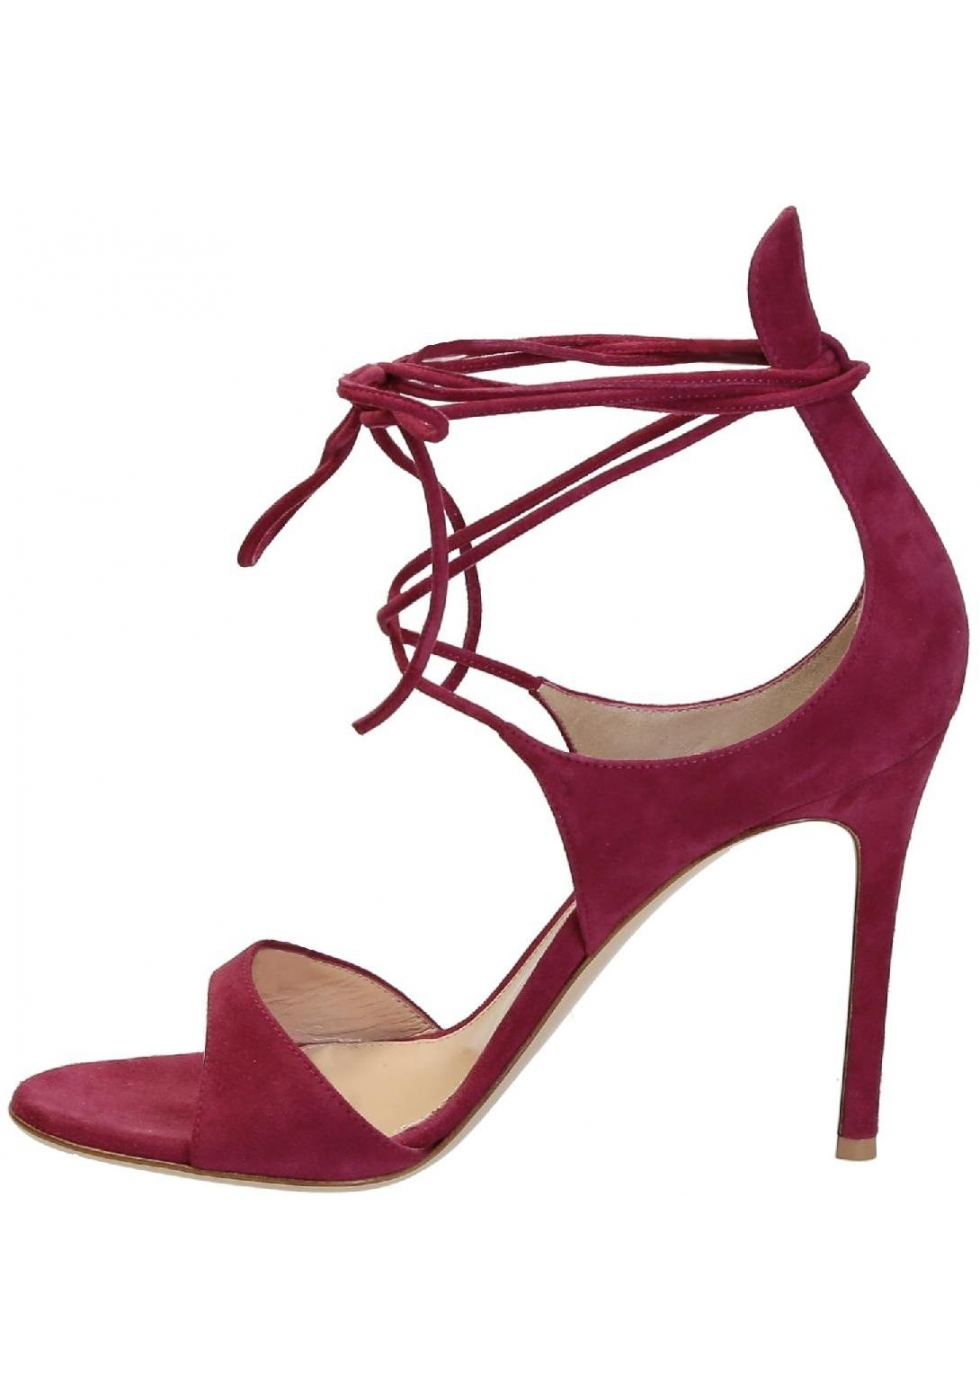 ... Gianvito Rossi high heel sandals in Fuchsia suede leather ...